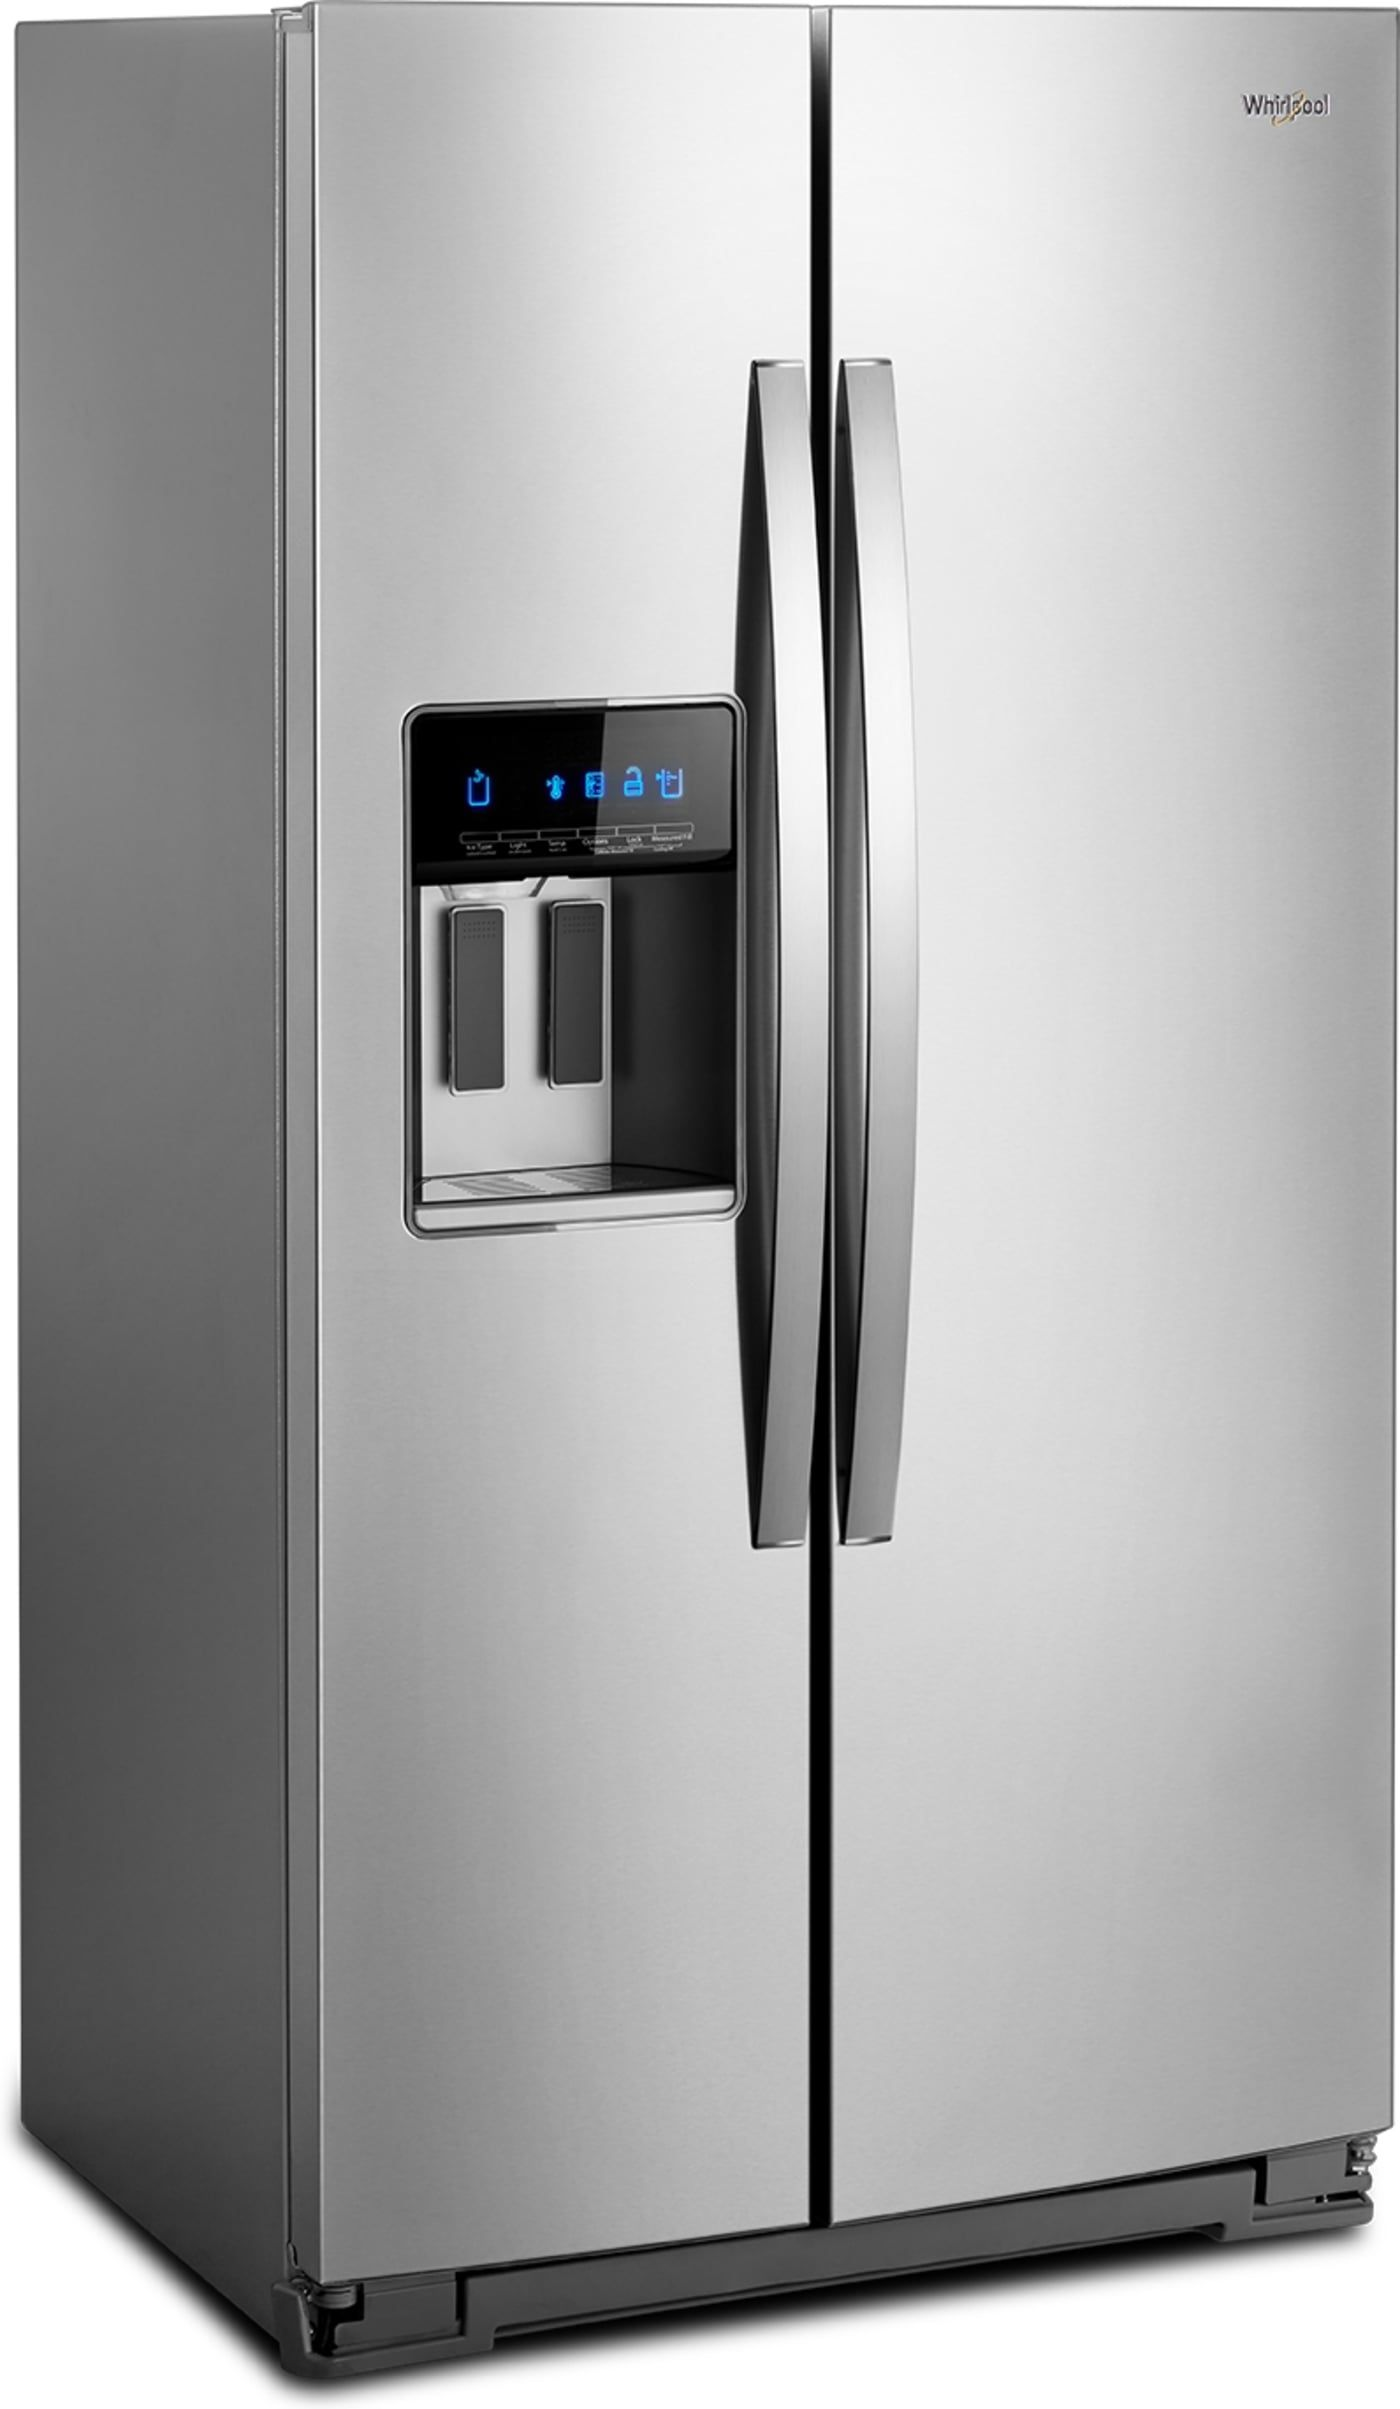 Wrs571cihz By Whirlpool Side By Side Refrigerators Goedekers Com Stainless Steel Counters Side By Side Refrigerator Whirlpool